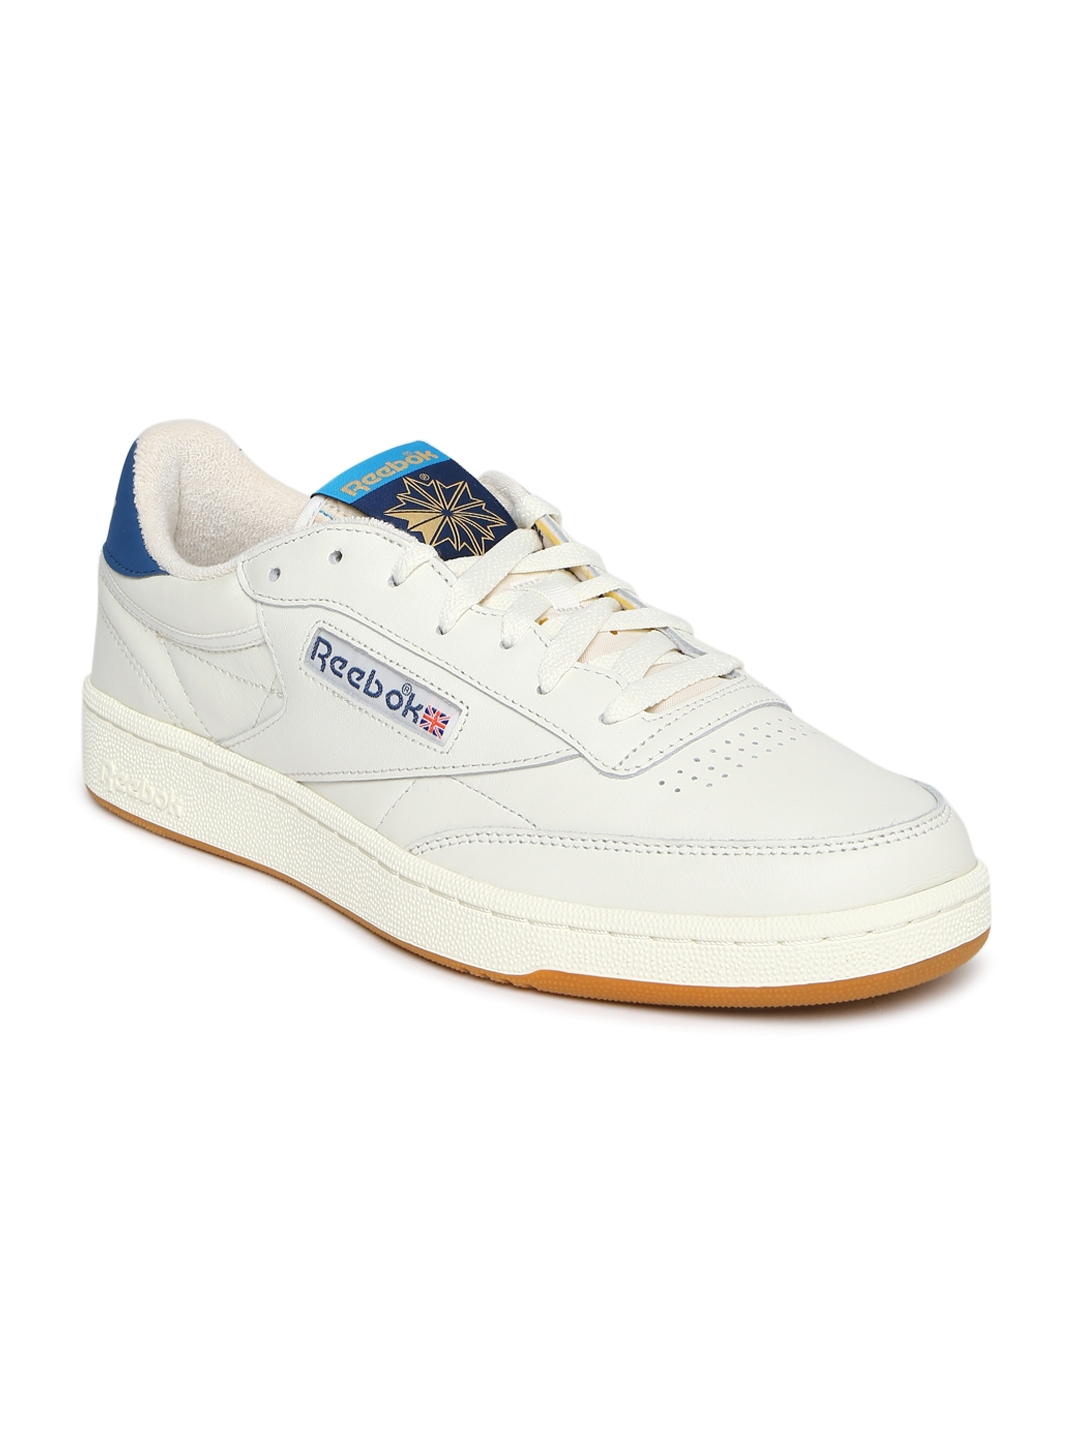 4aa06106846a reebok mens tennis shoes cheap   OFF52% The Largest Catalog Discounts